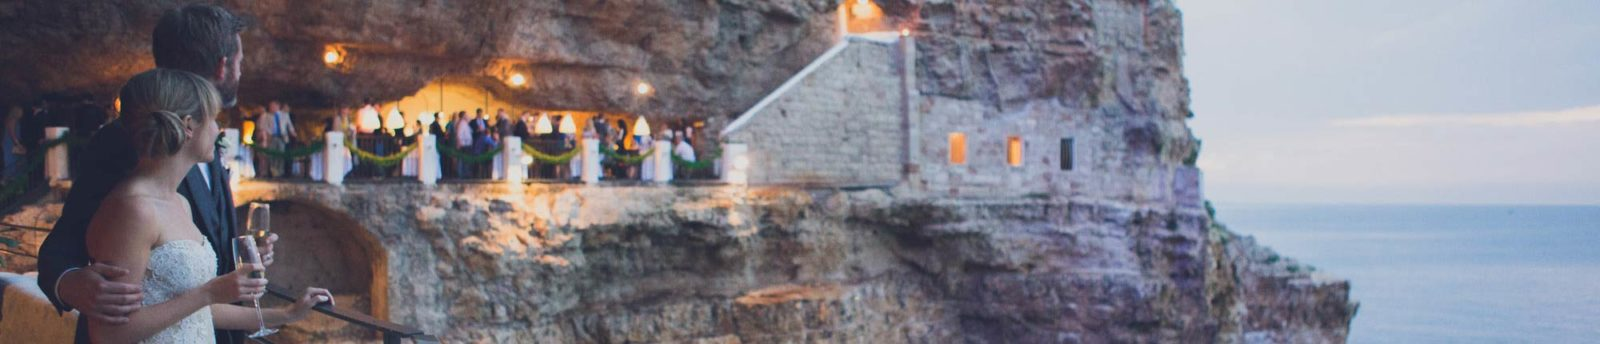 Wedding In Polignano A Mare Wedding At Grotta Palazzese Apulia,3 Bedroom House Designs Pictures In Nigeria